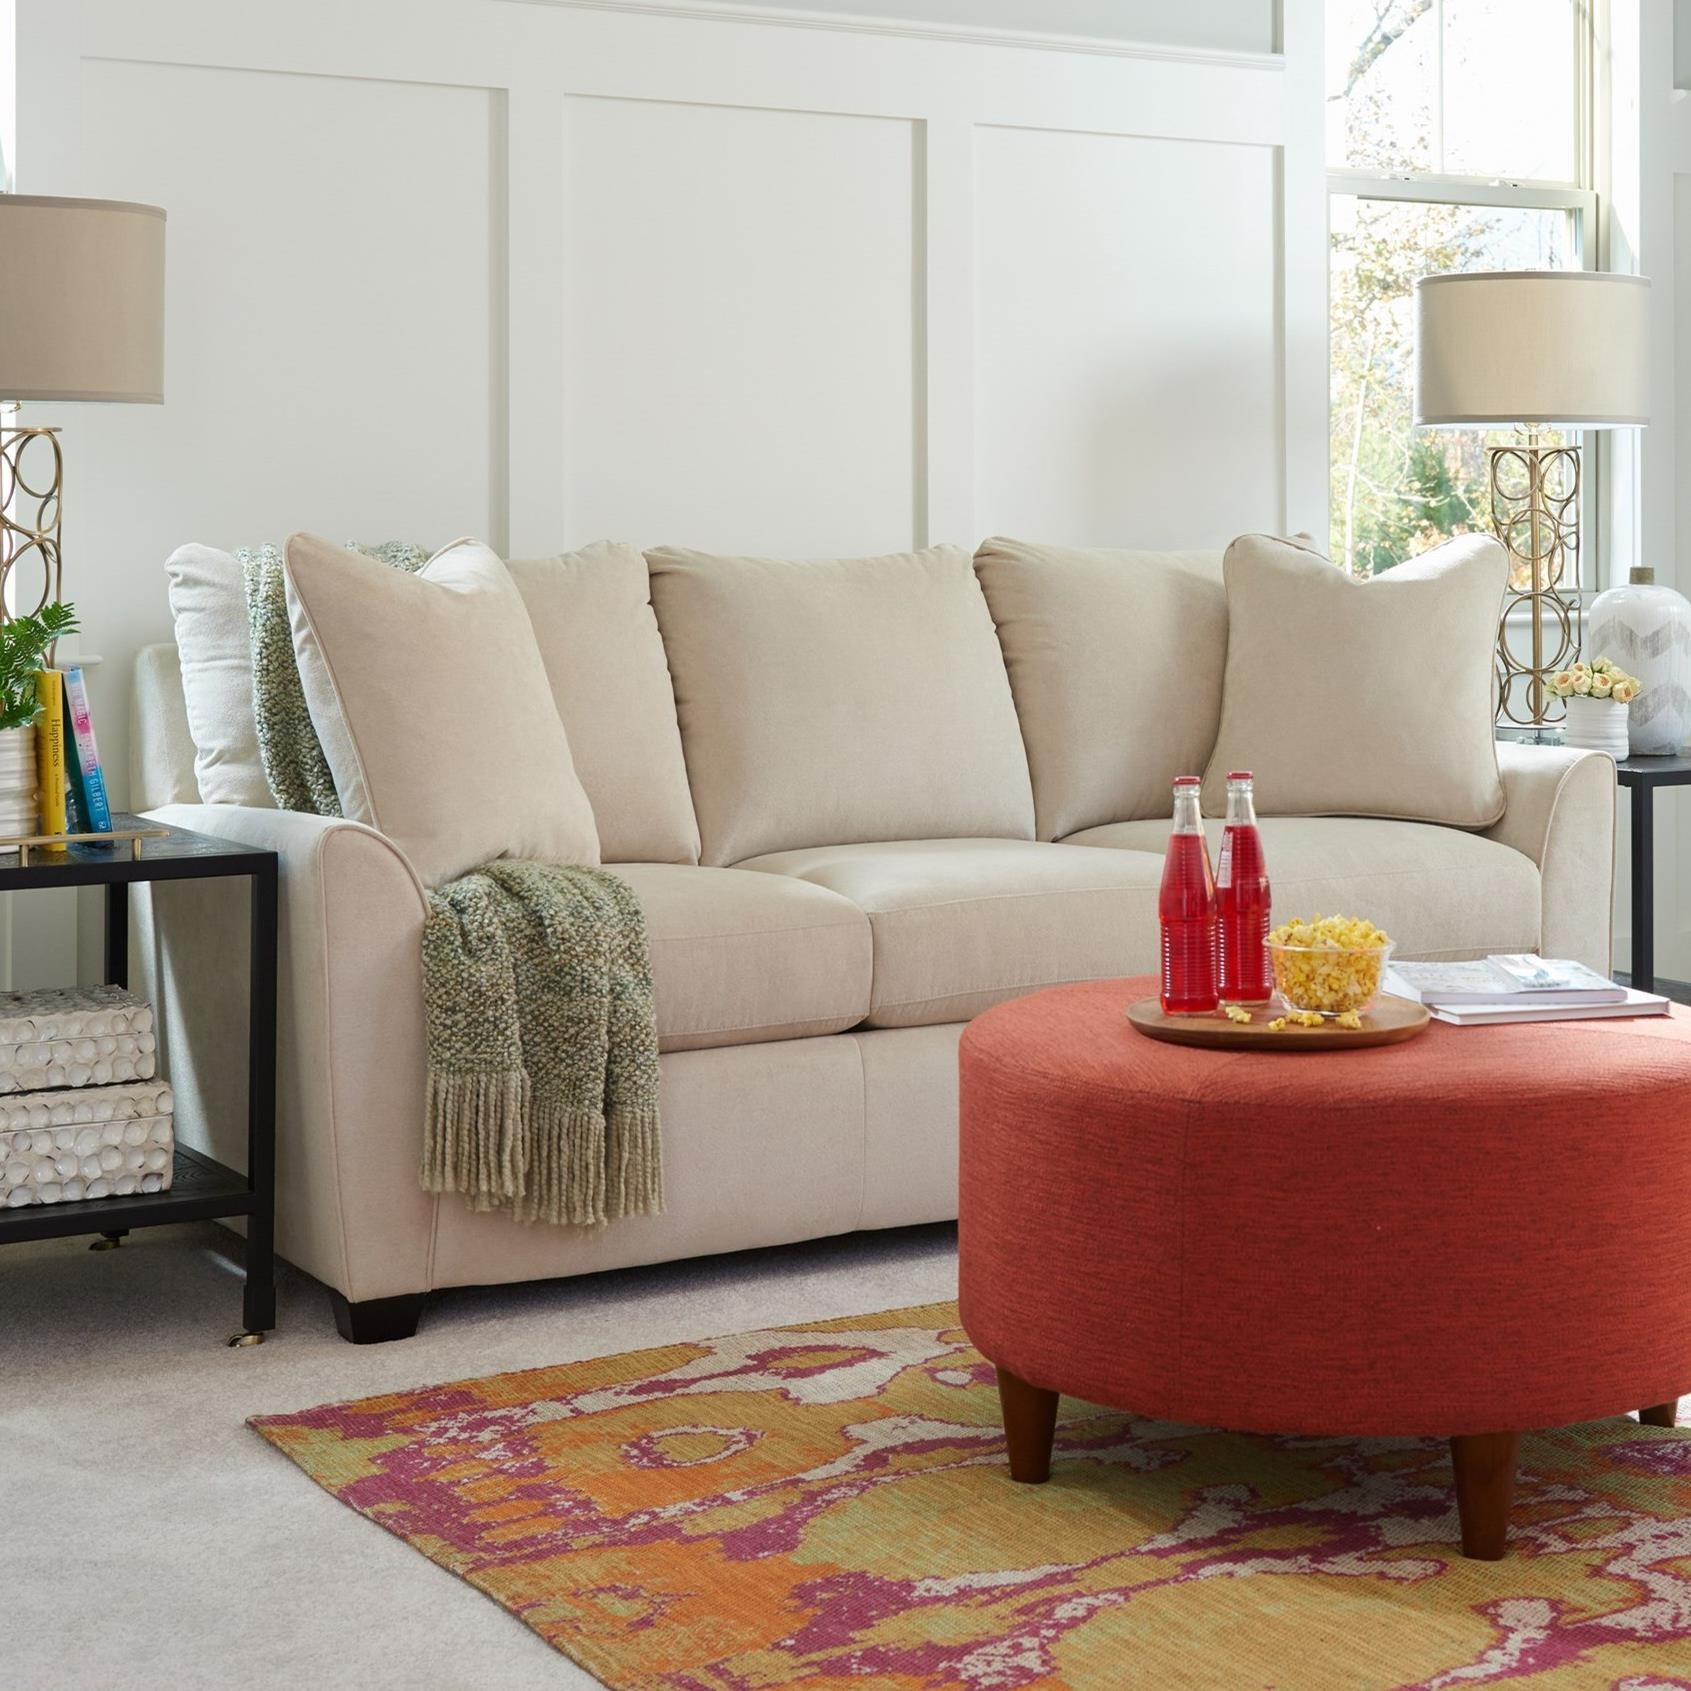 Amy La-Z-Boy® Premier Sofa by La-Z-Boy at Fisher Home Furnishings